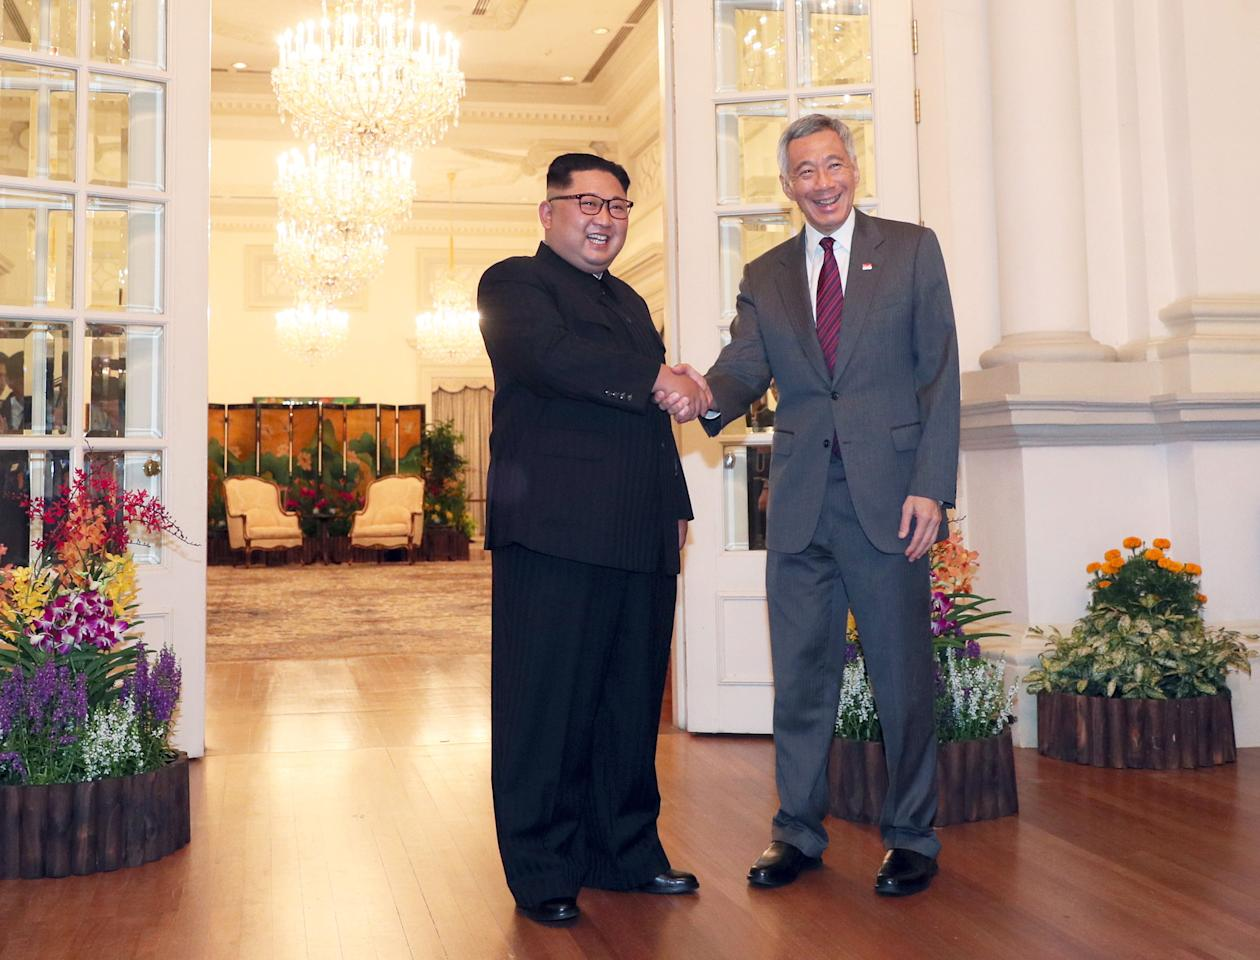 <p>North Korean leader Kim Jong Un and Singapore's Prime Minister Lee Hsien Loong shake hands at the Istana. (PHOTO: EFE/EPA) </p>